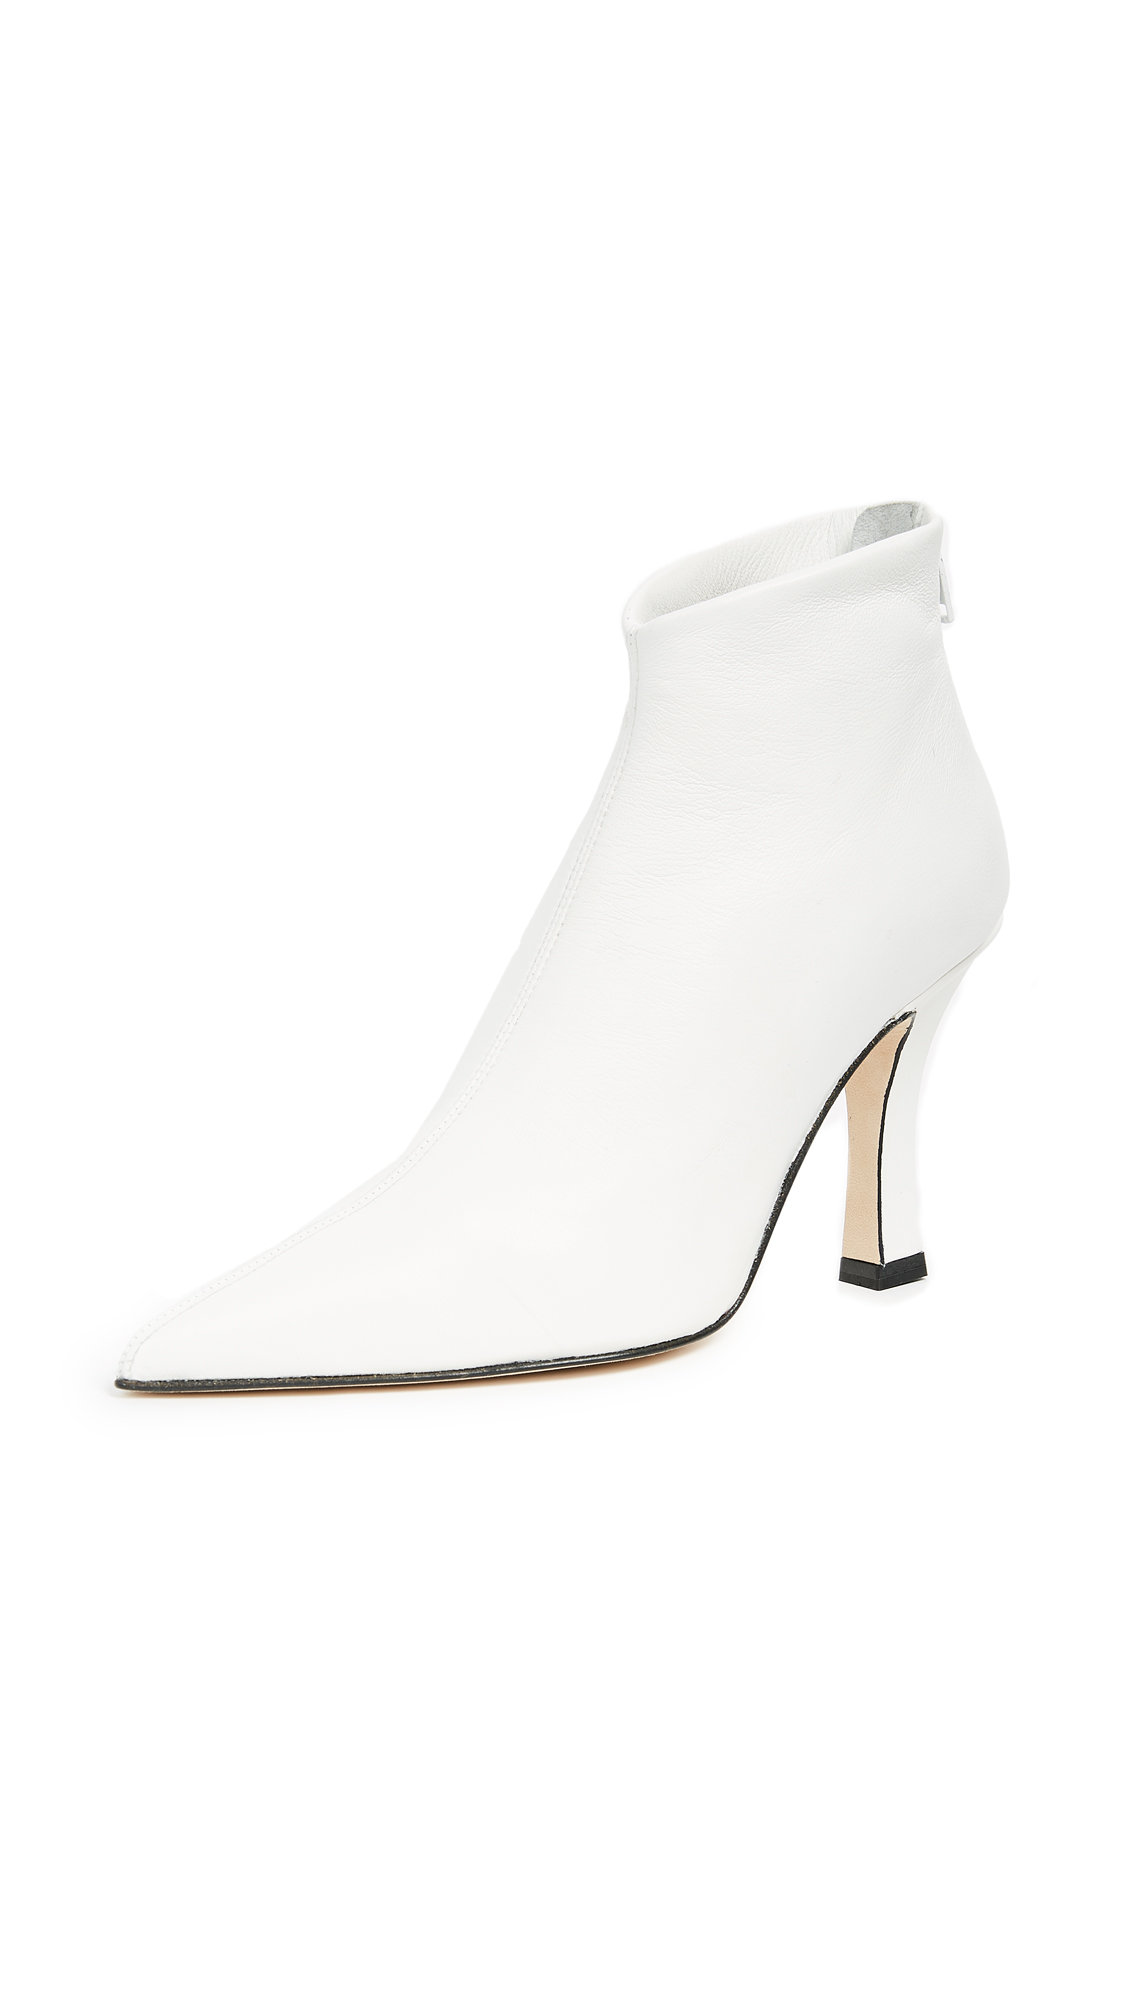 Helmut Lang Glove Booties - White